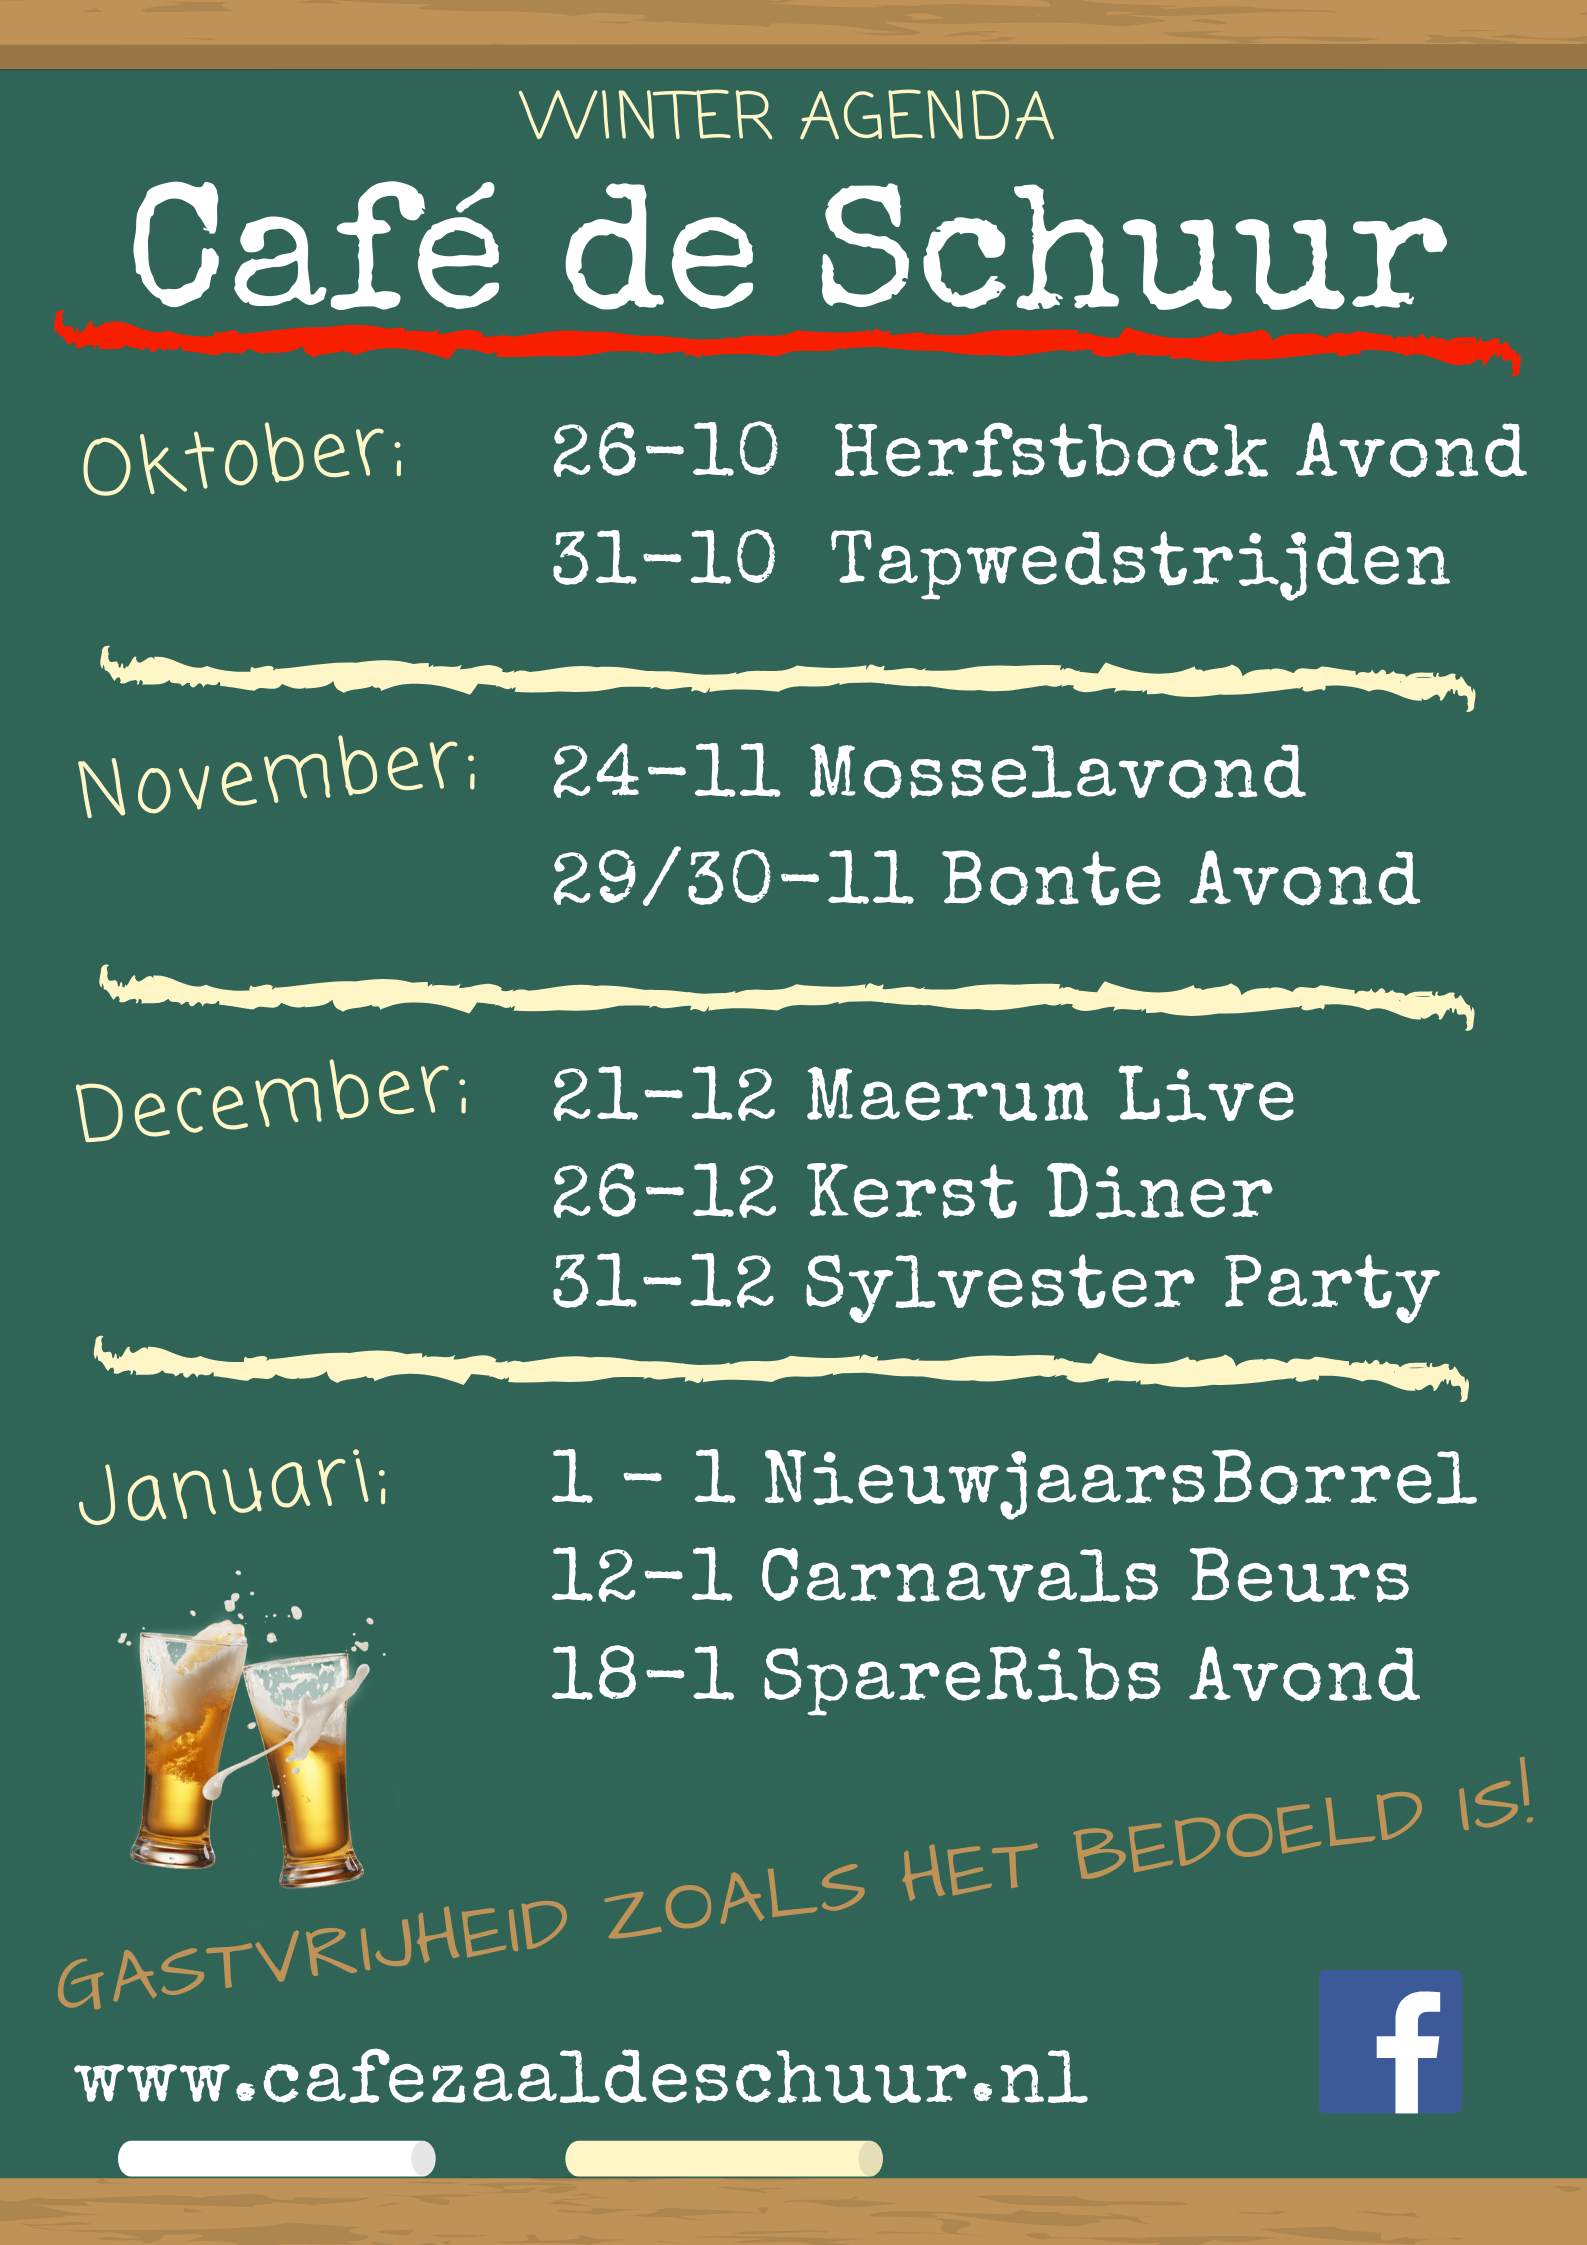 Schuur winter agenda